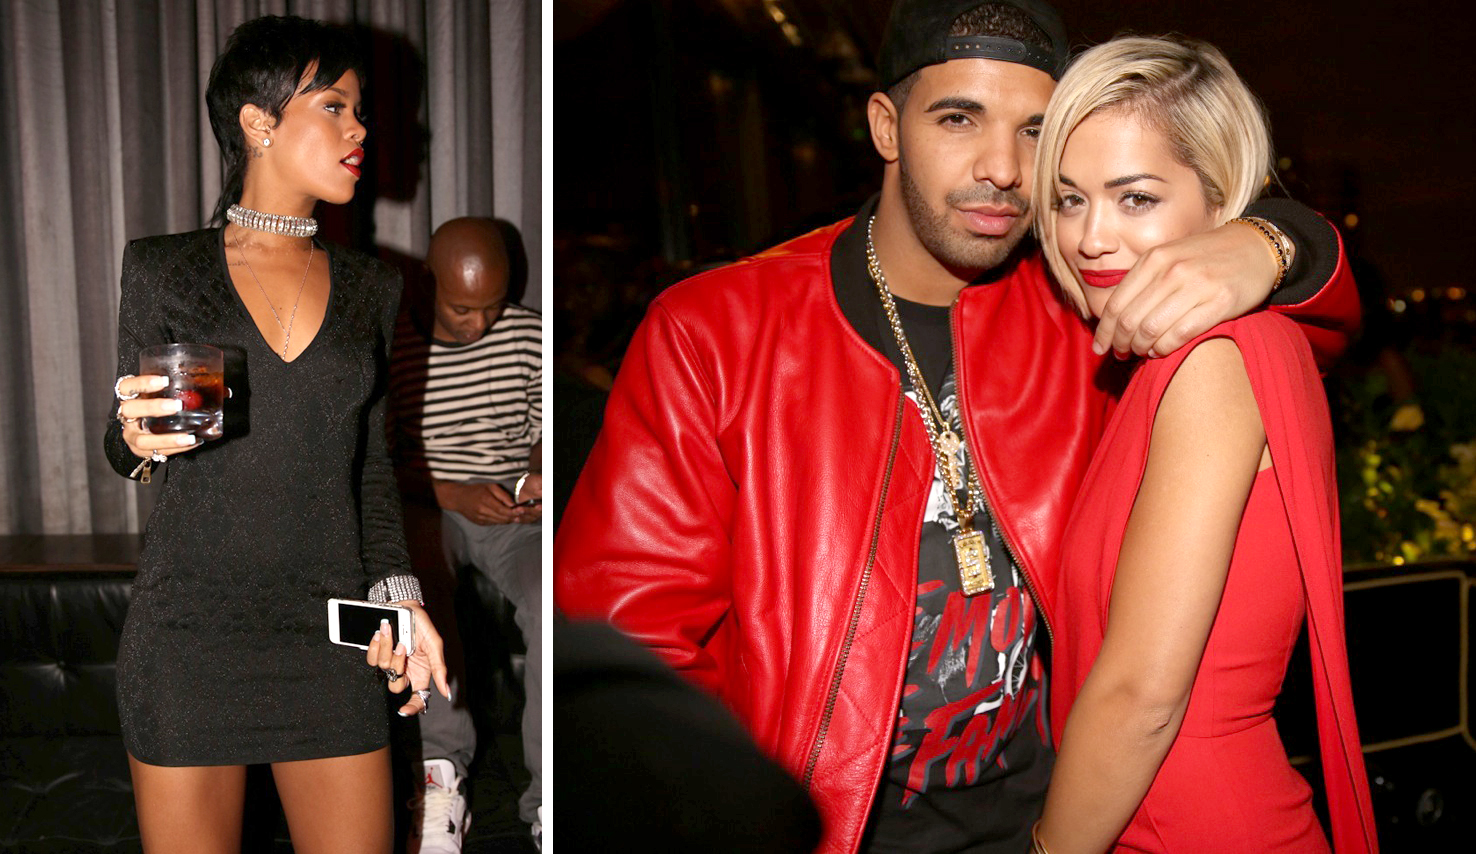 Rihanna (L), Drake and Rita Ora hit up VMA afterparty (Courtesy: CIROQ)